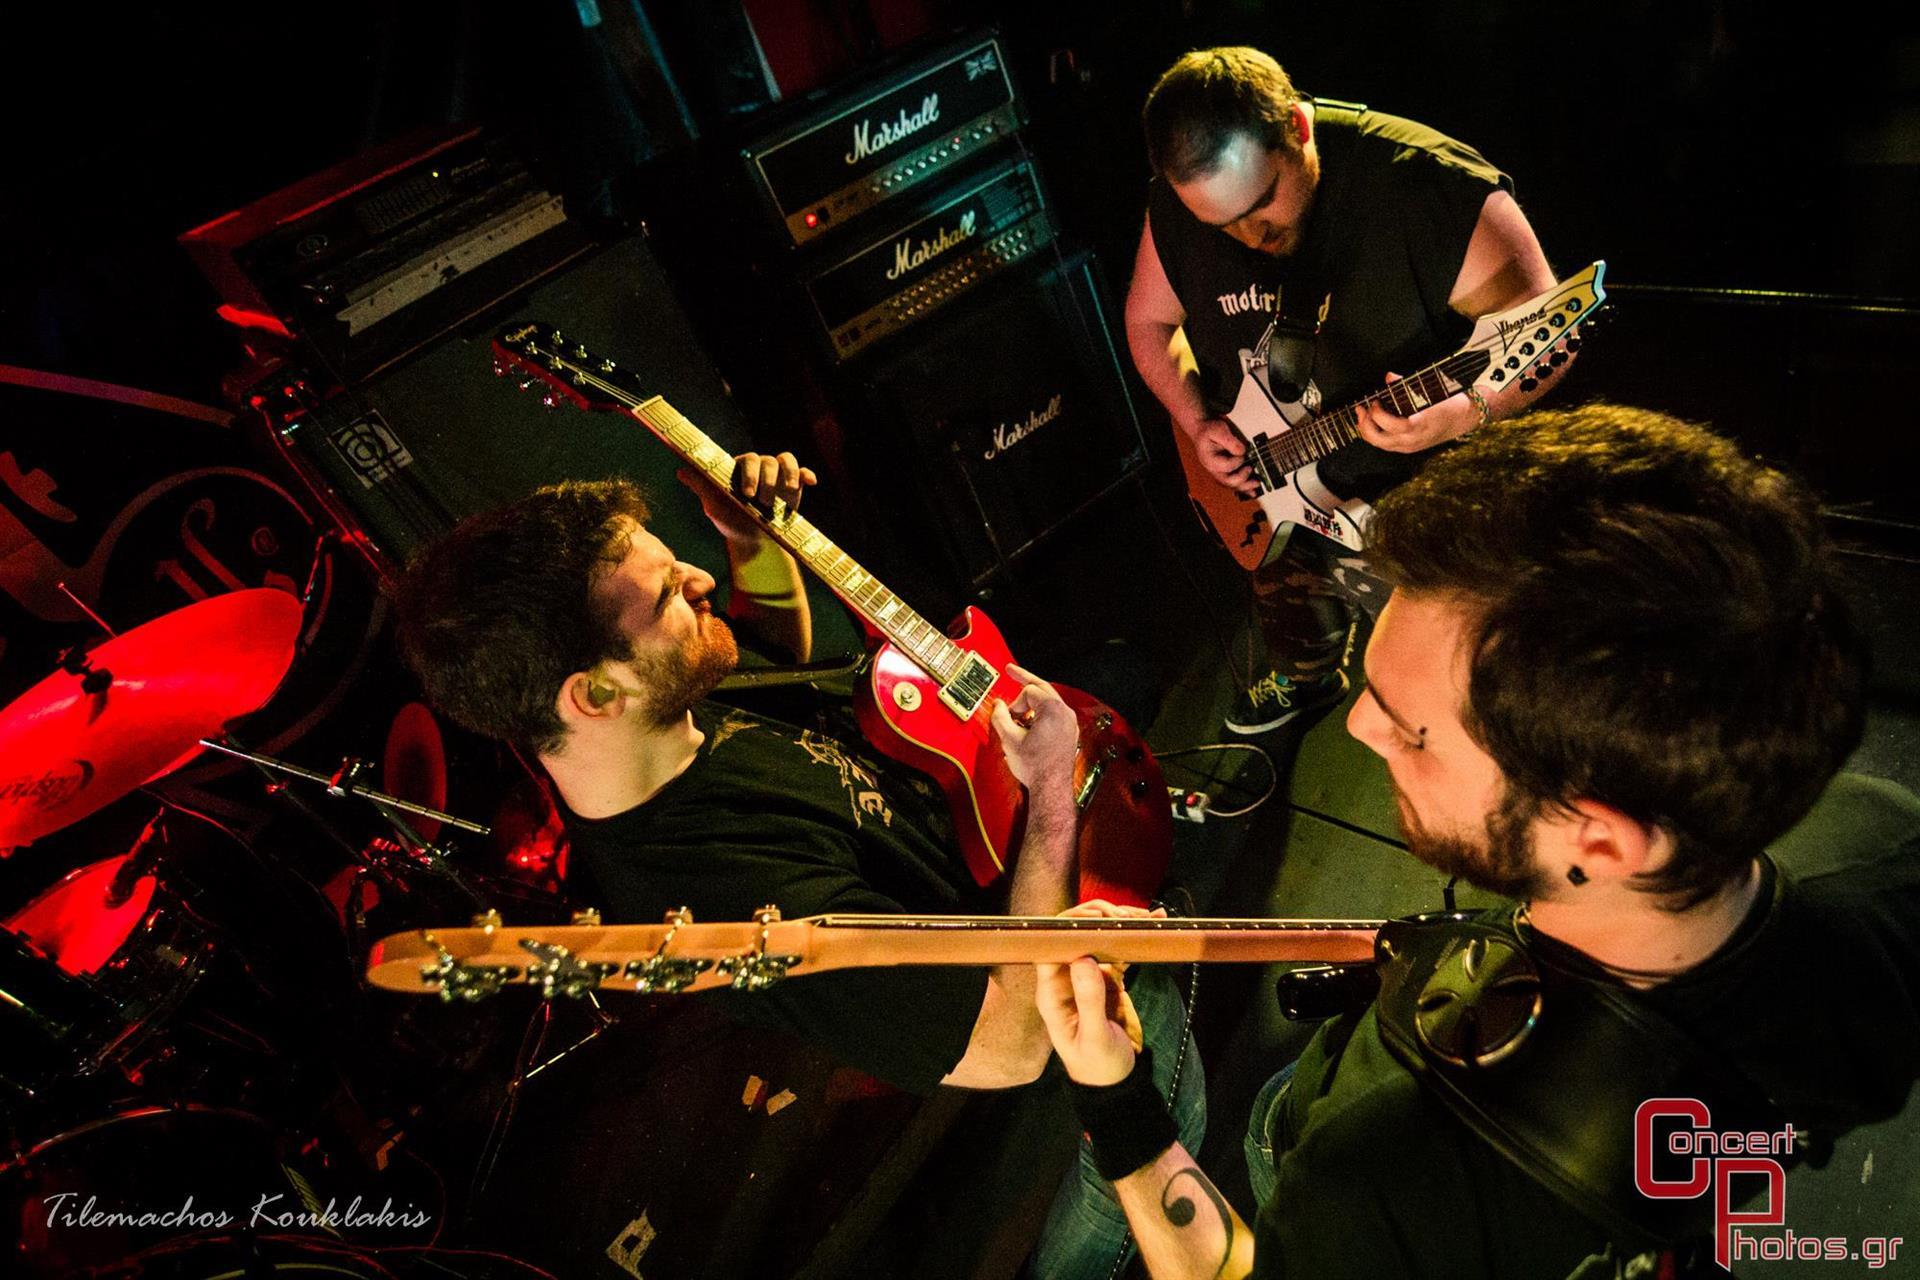 Battle Of The Bands Athens - Leg 4-test photographer:  - Battle Of The Bands-20150209-001019